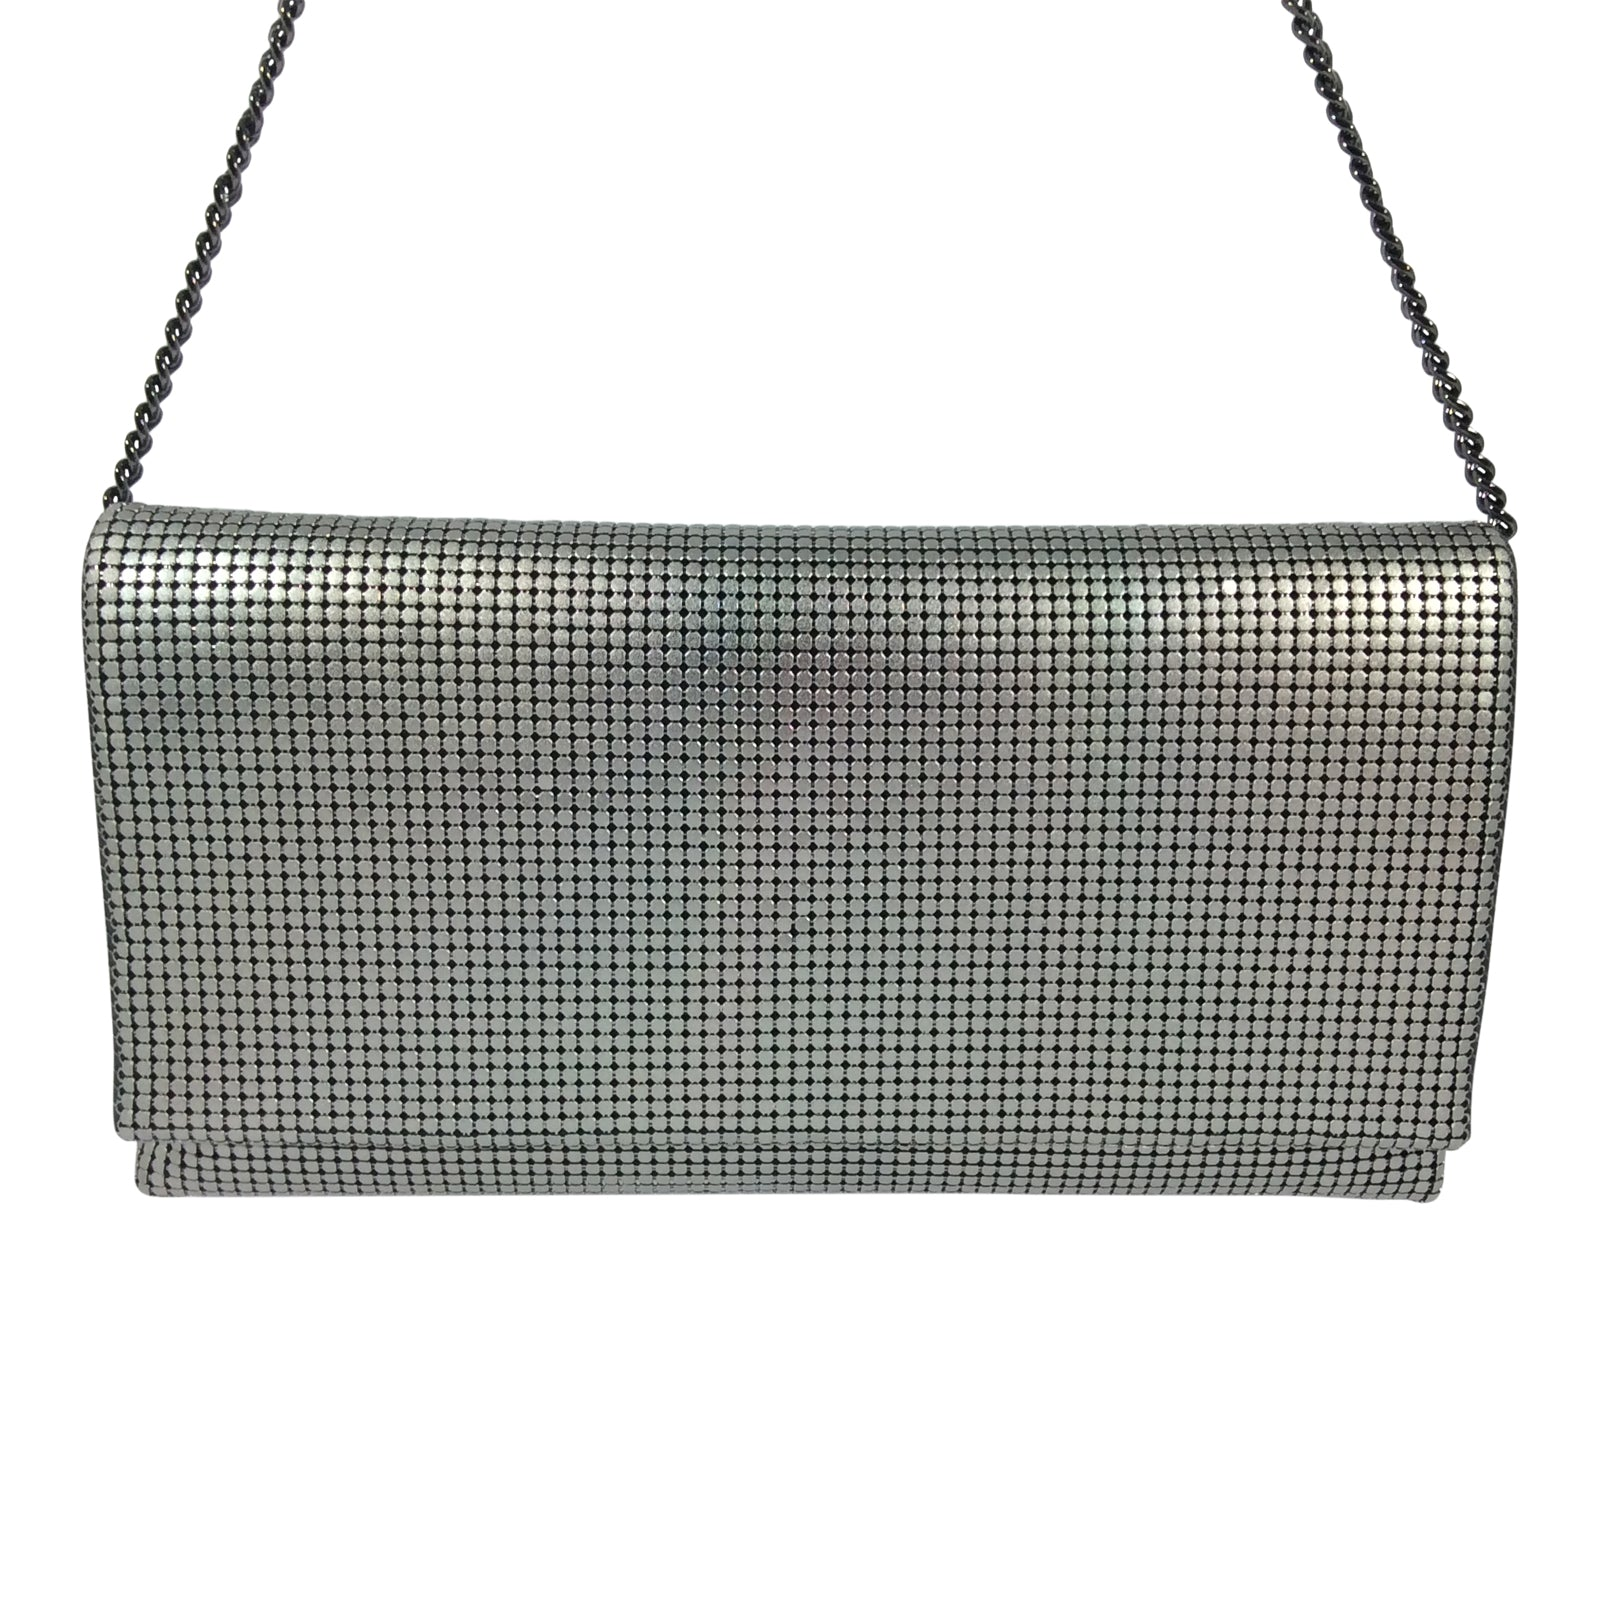 Cosgrove & Beasley Clutch - Magnet - Grey Mesh - Sole Sister Shoes